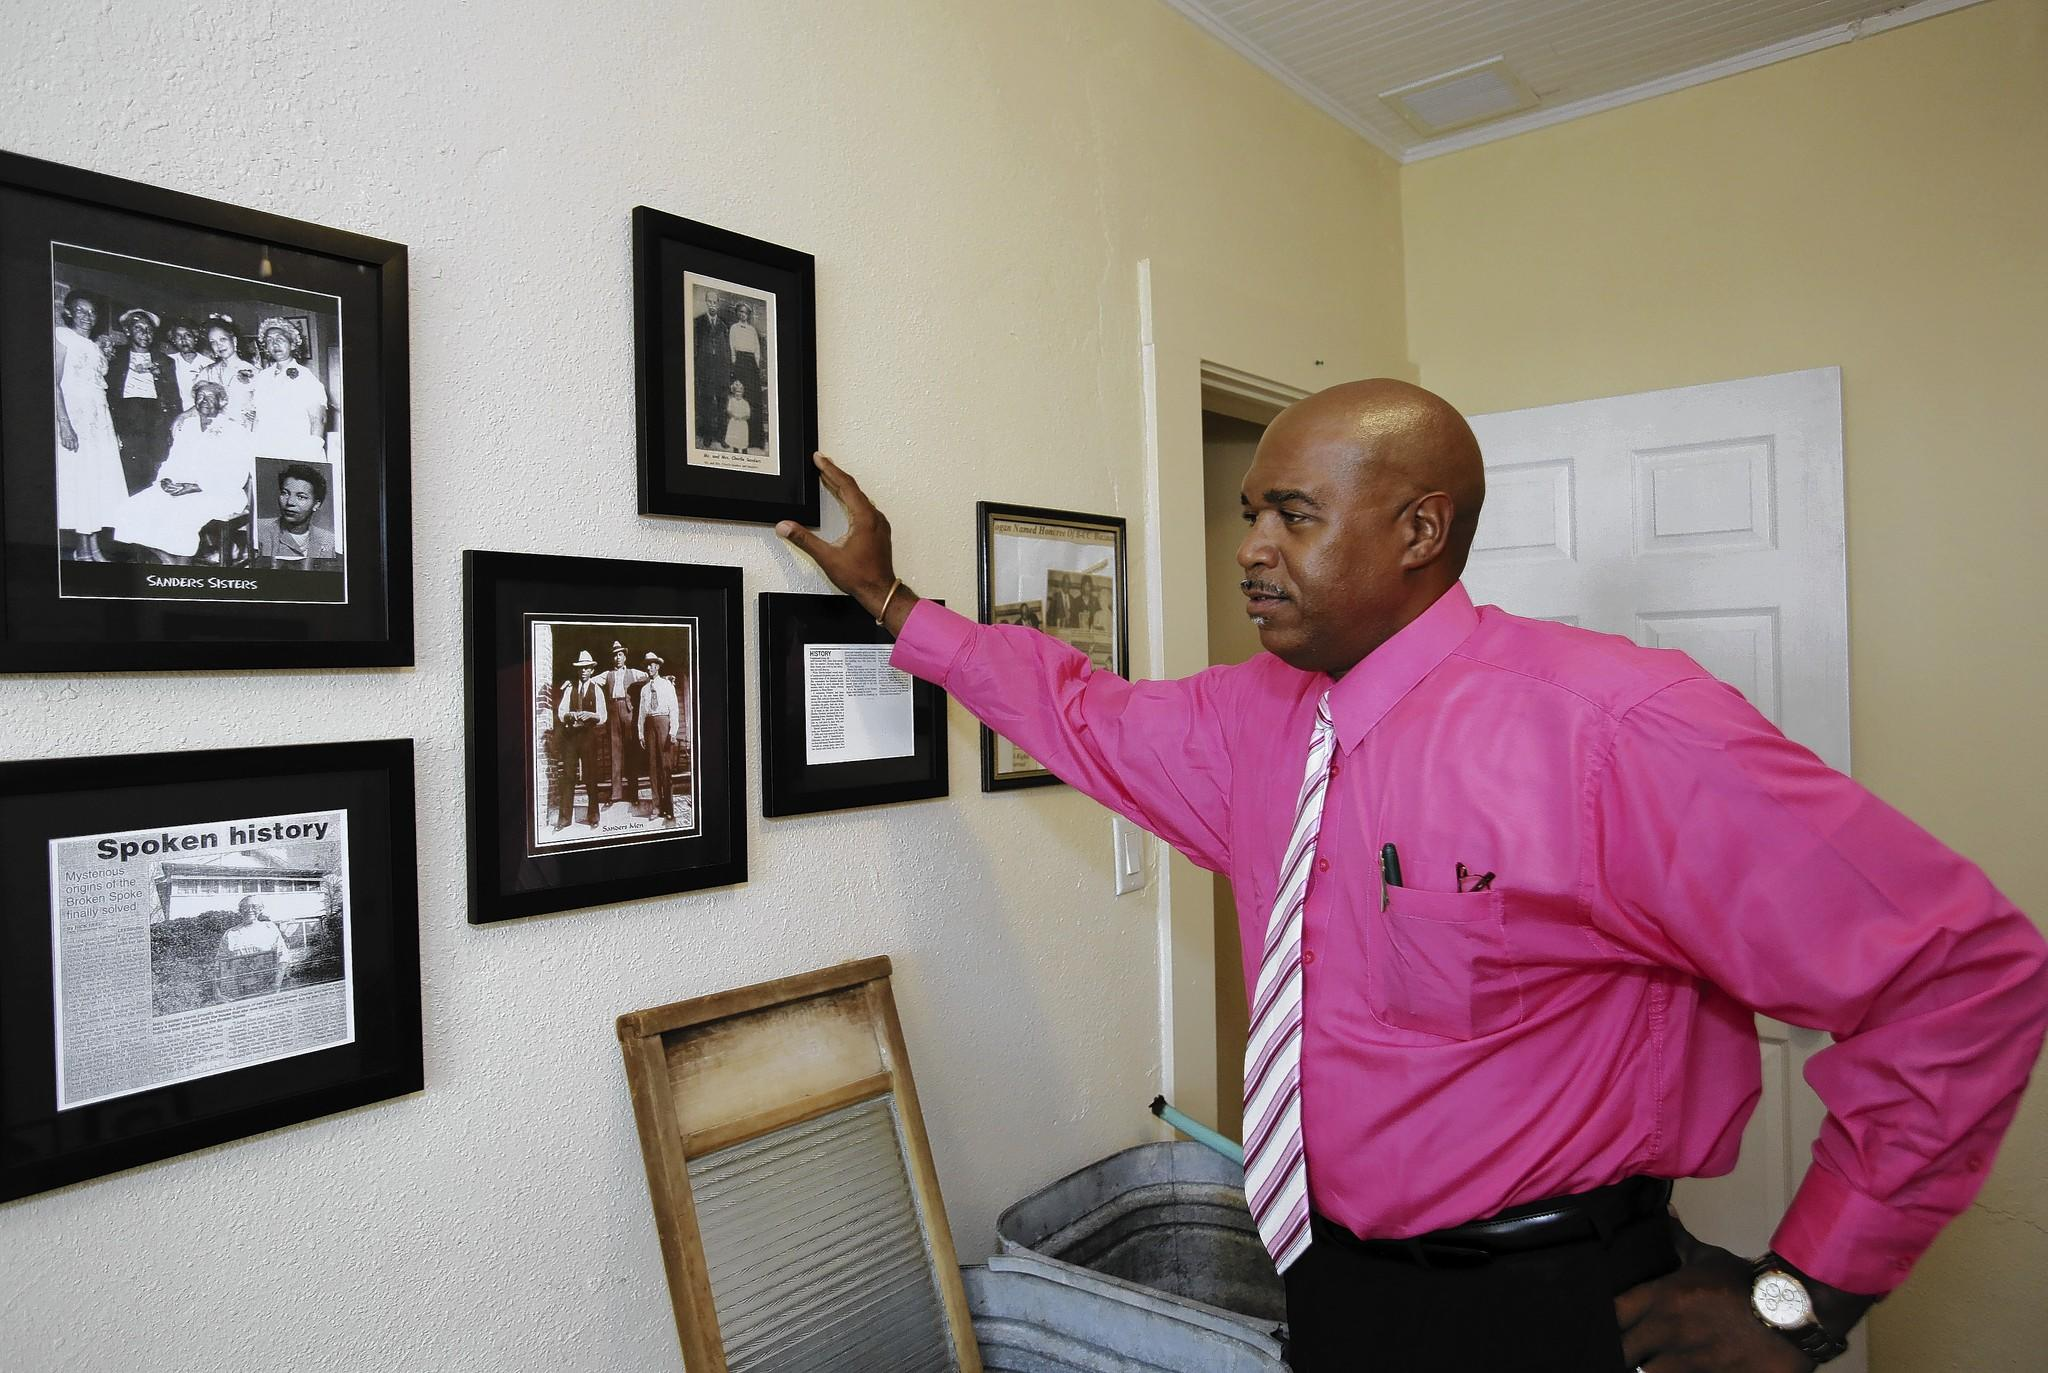 Ralph Morris has been named coordinator of the Leesburg African American Museum. The museum spotlights the life and work of many great African Americans who have had an impact on the city.